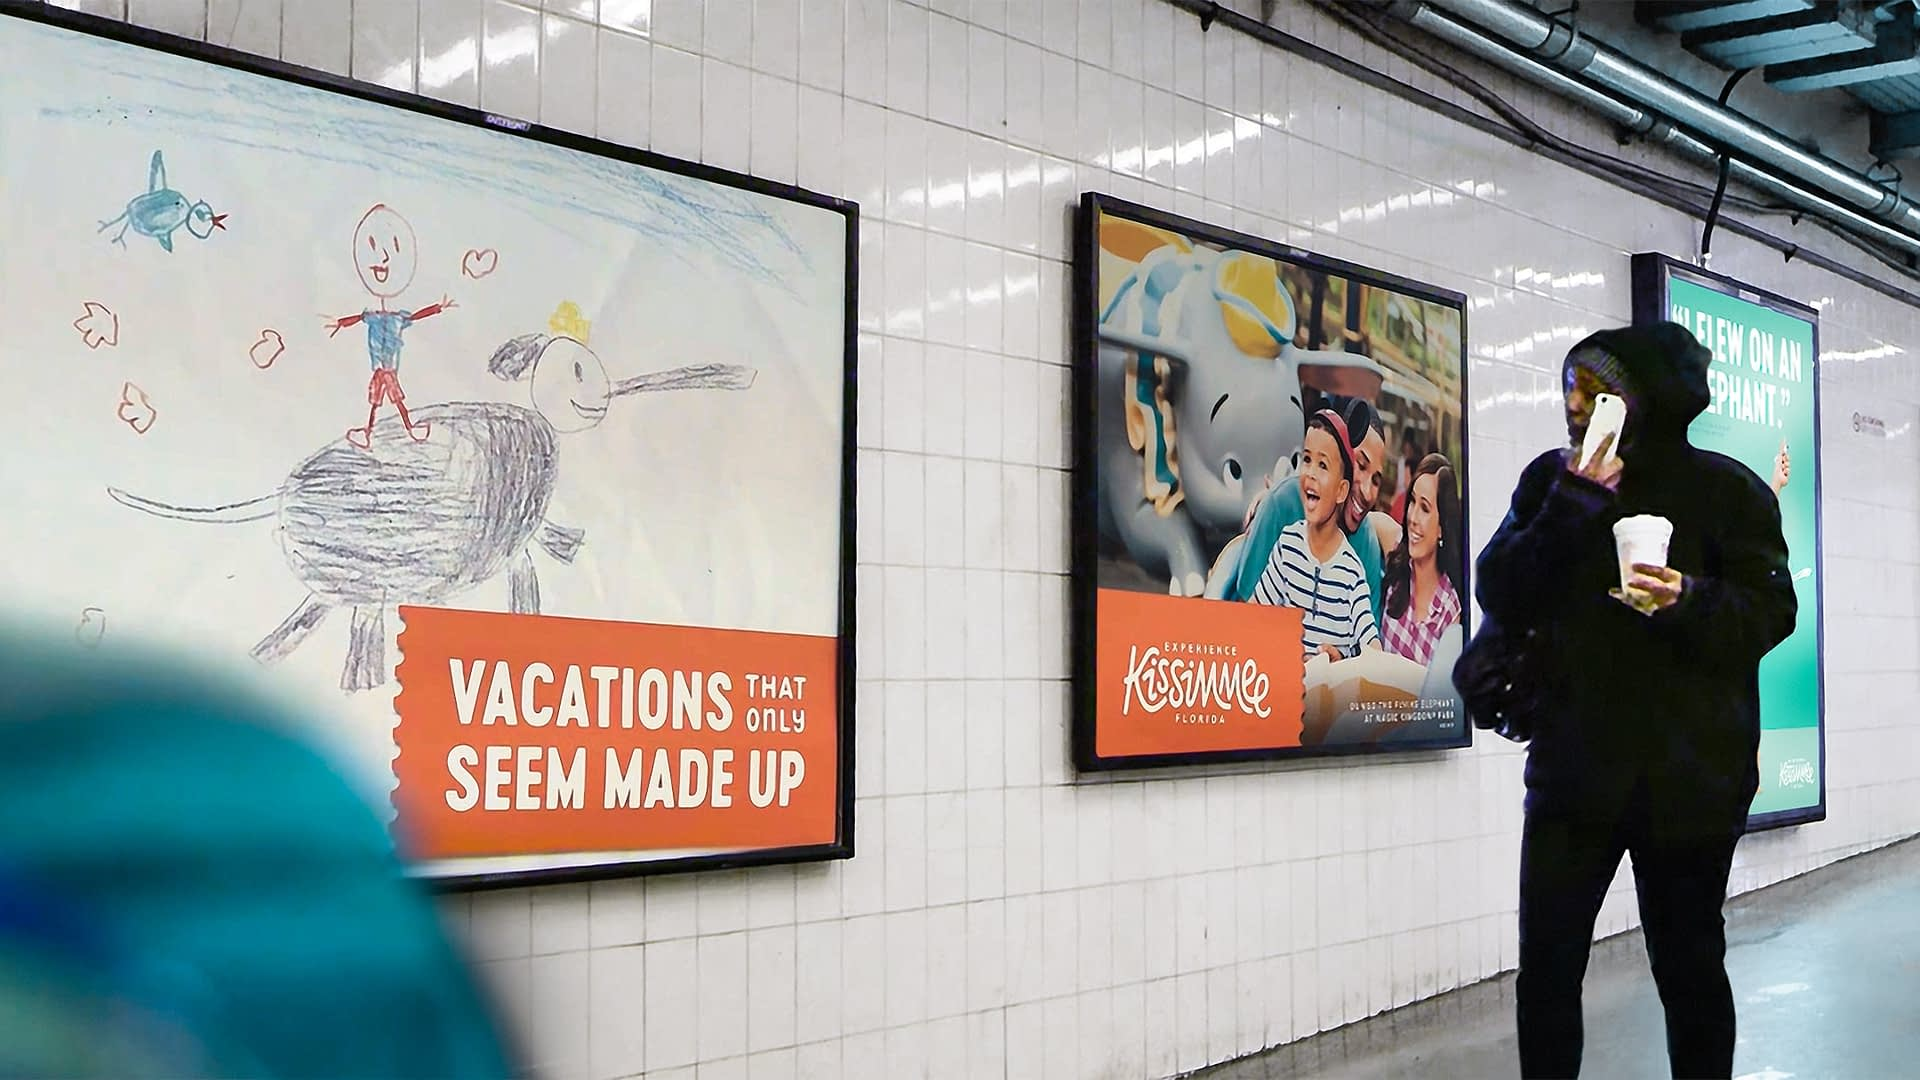 Experience Kissimmee ads in a subway.